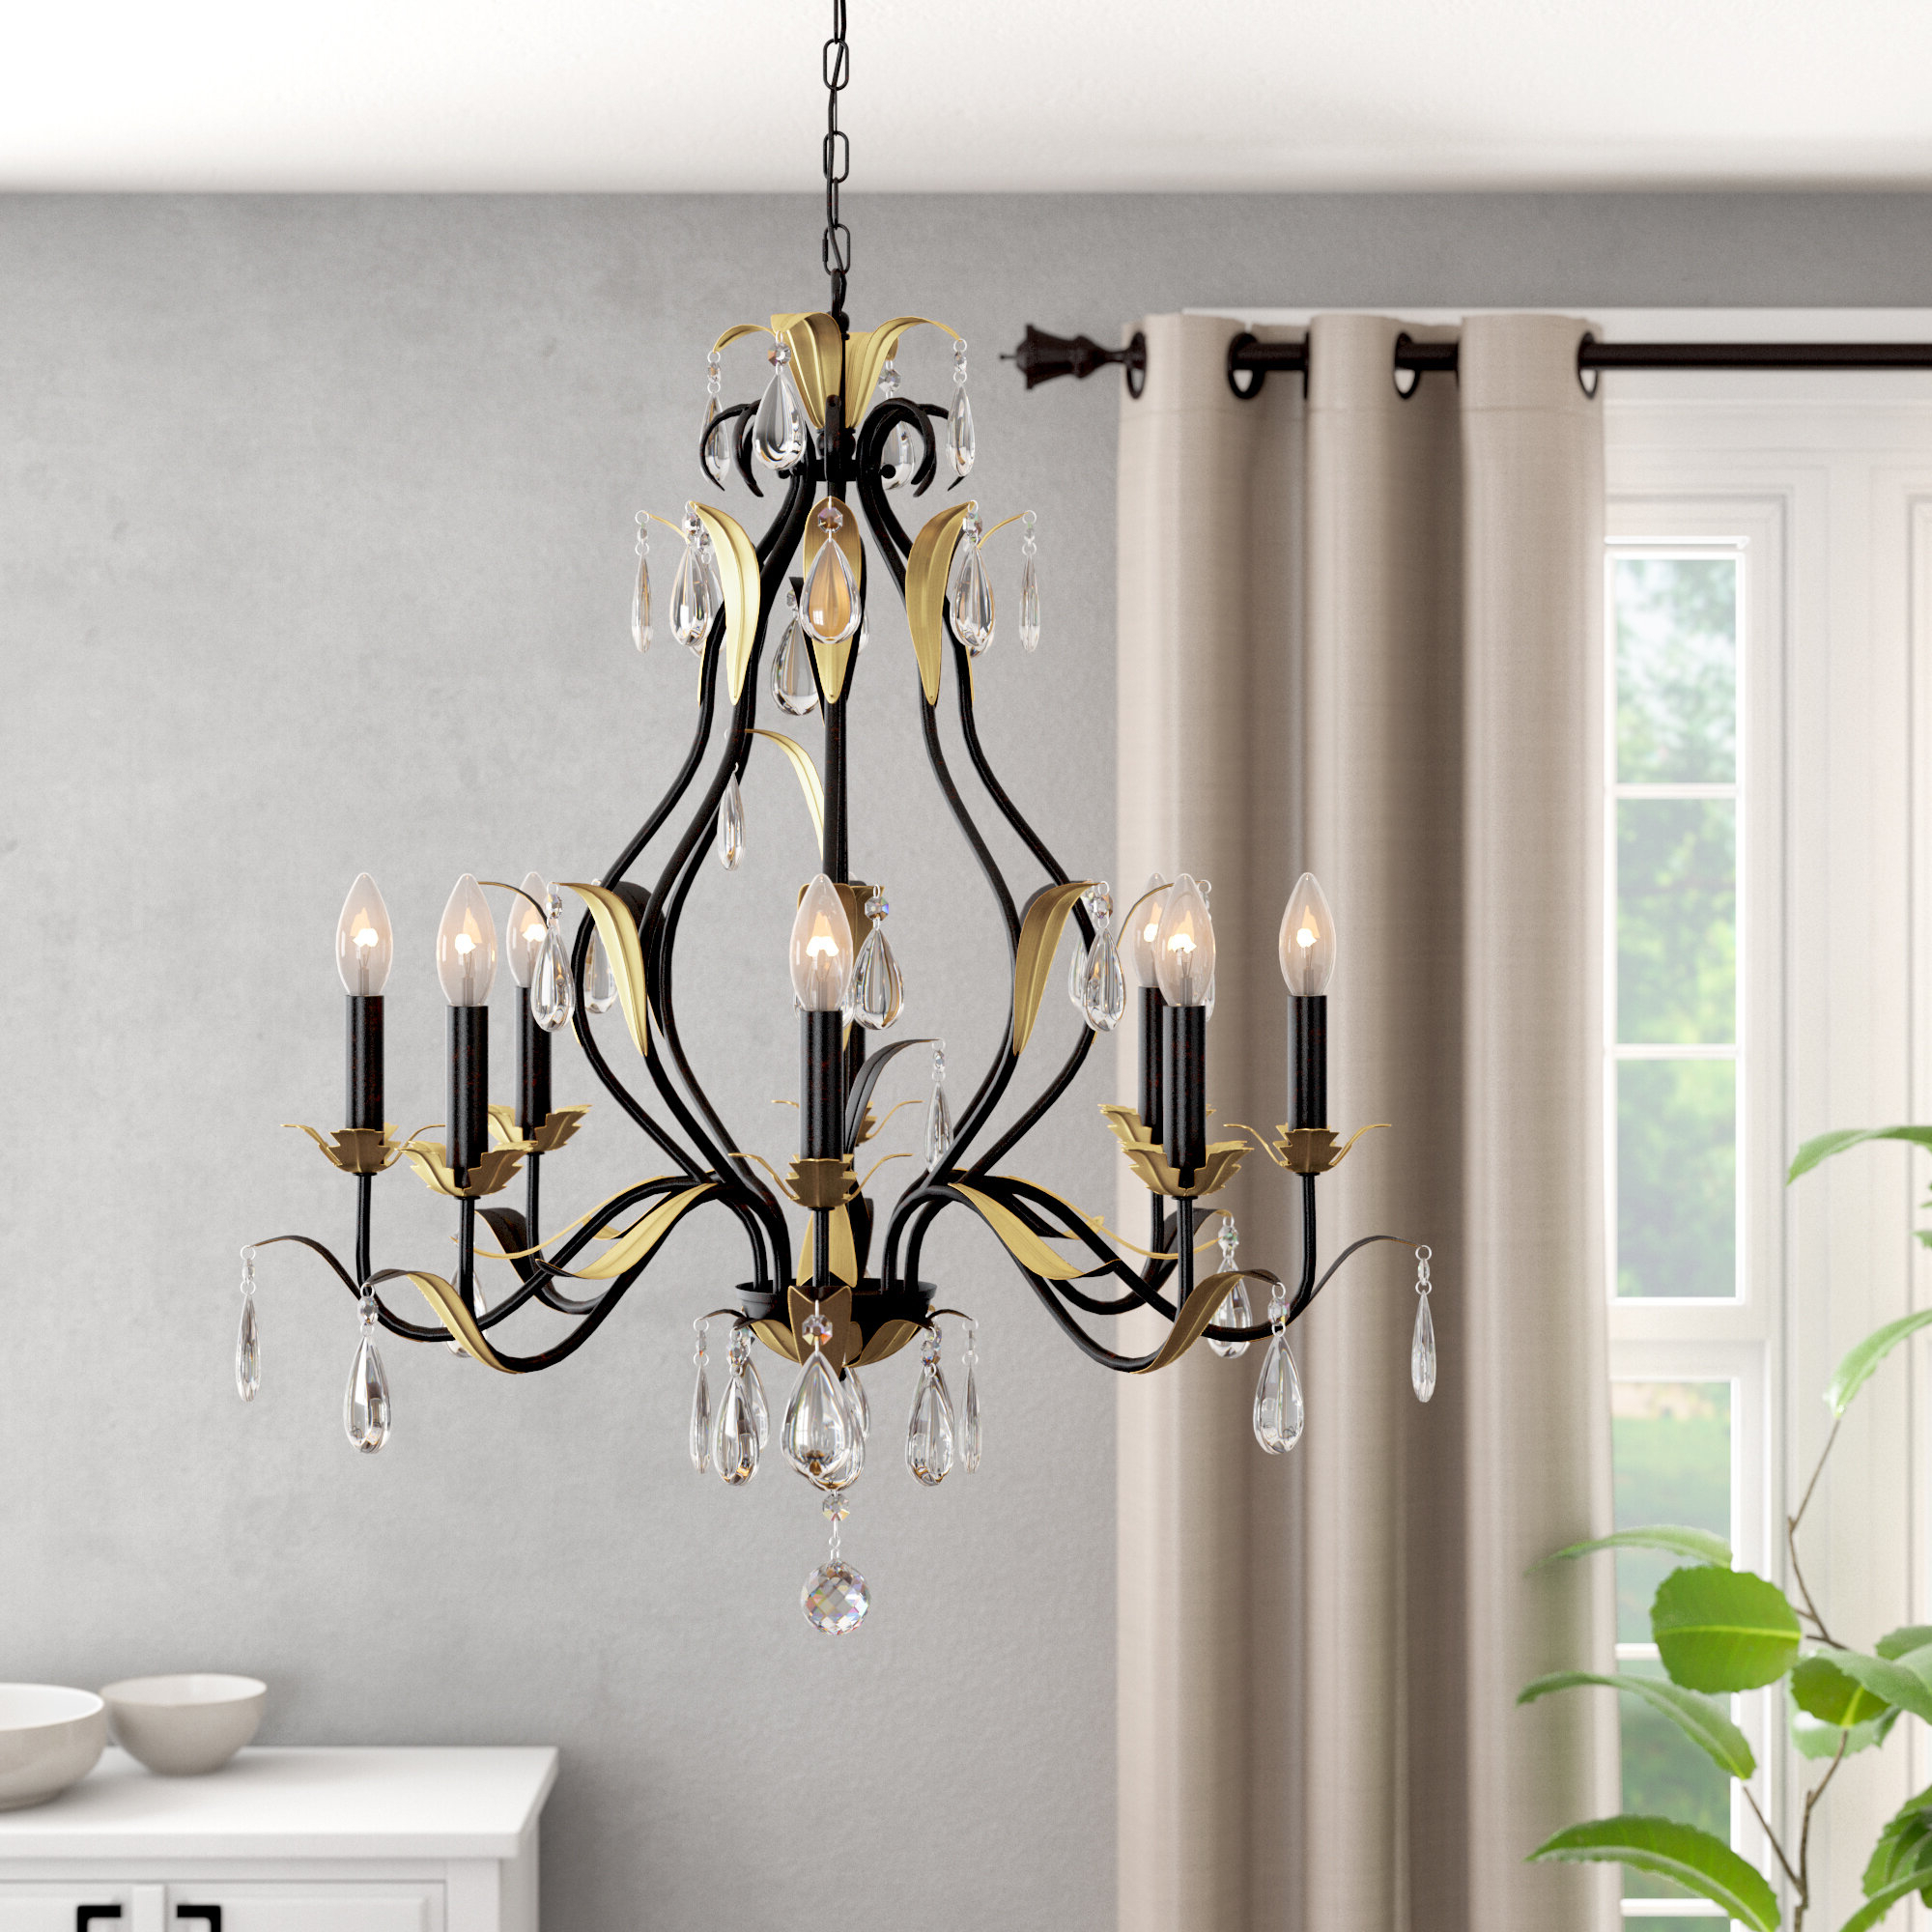 Aspendale 8 Light Candle Style Chandelier With Regard To Most Recently Released Warner Robins 3 Light Lantern Pendants (View 1 of 20)